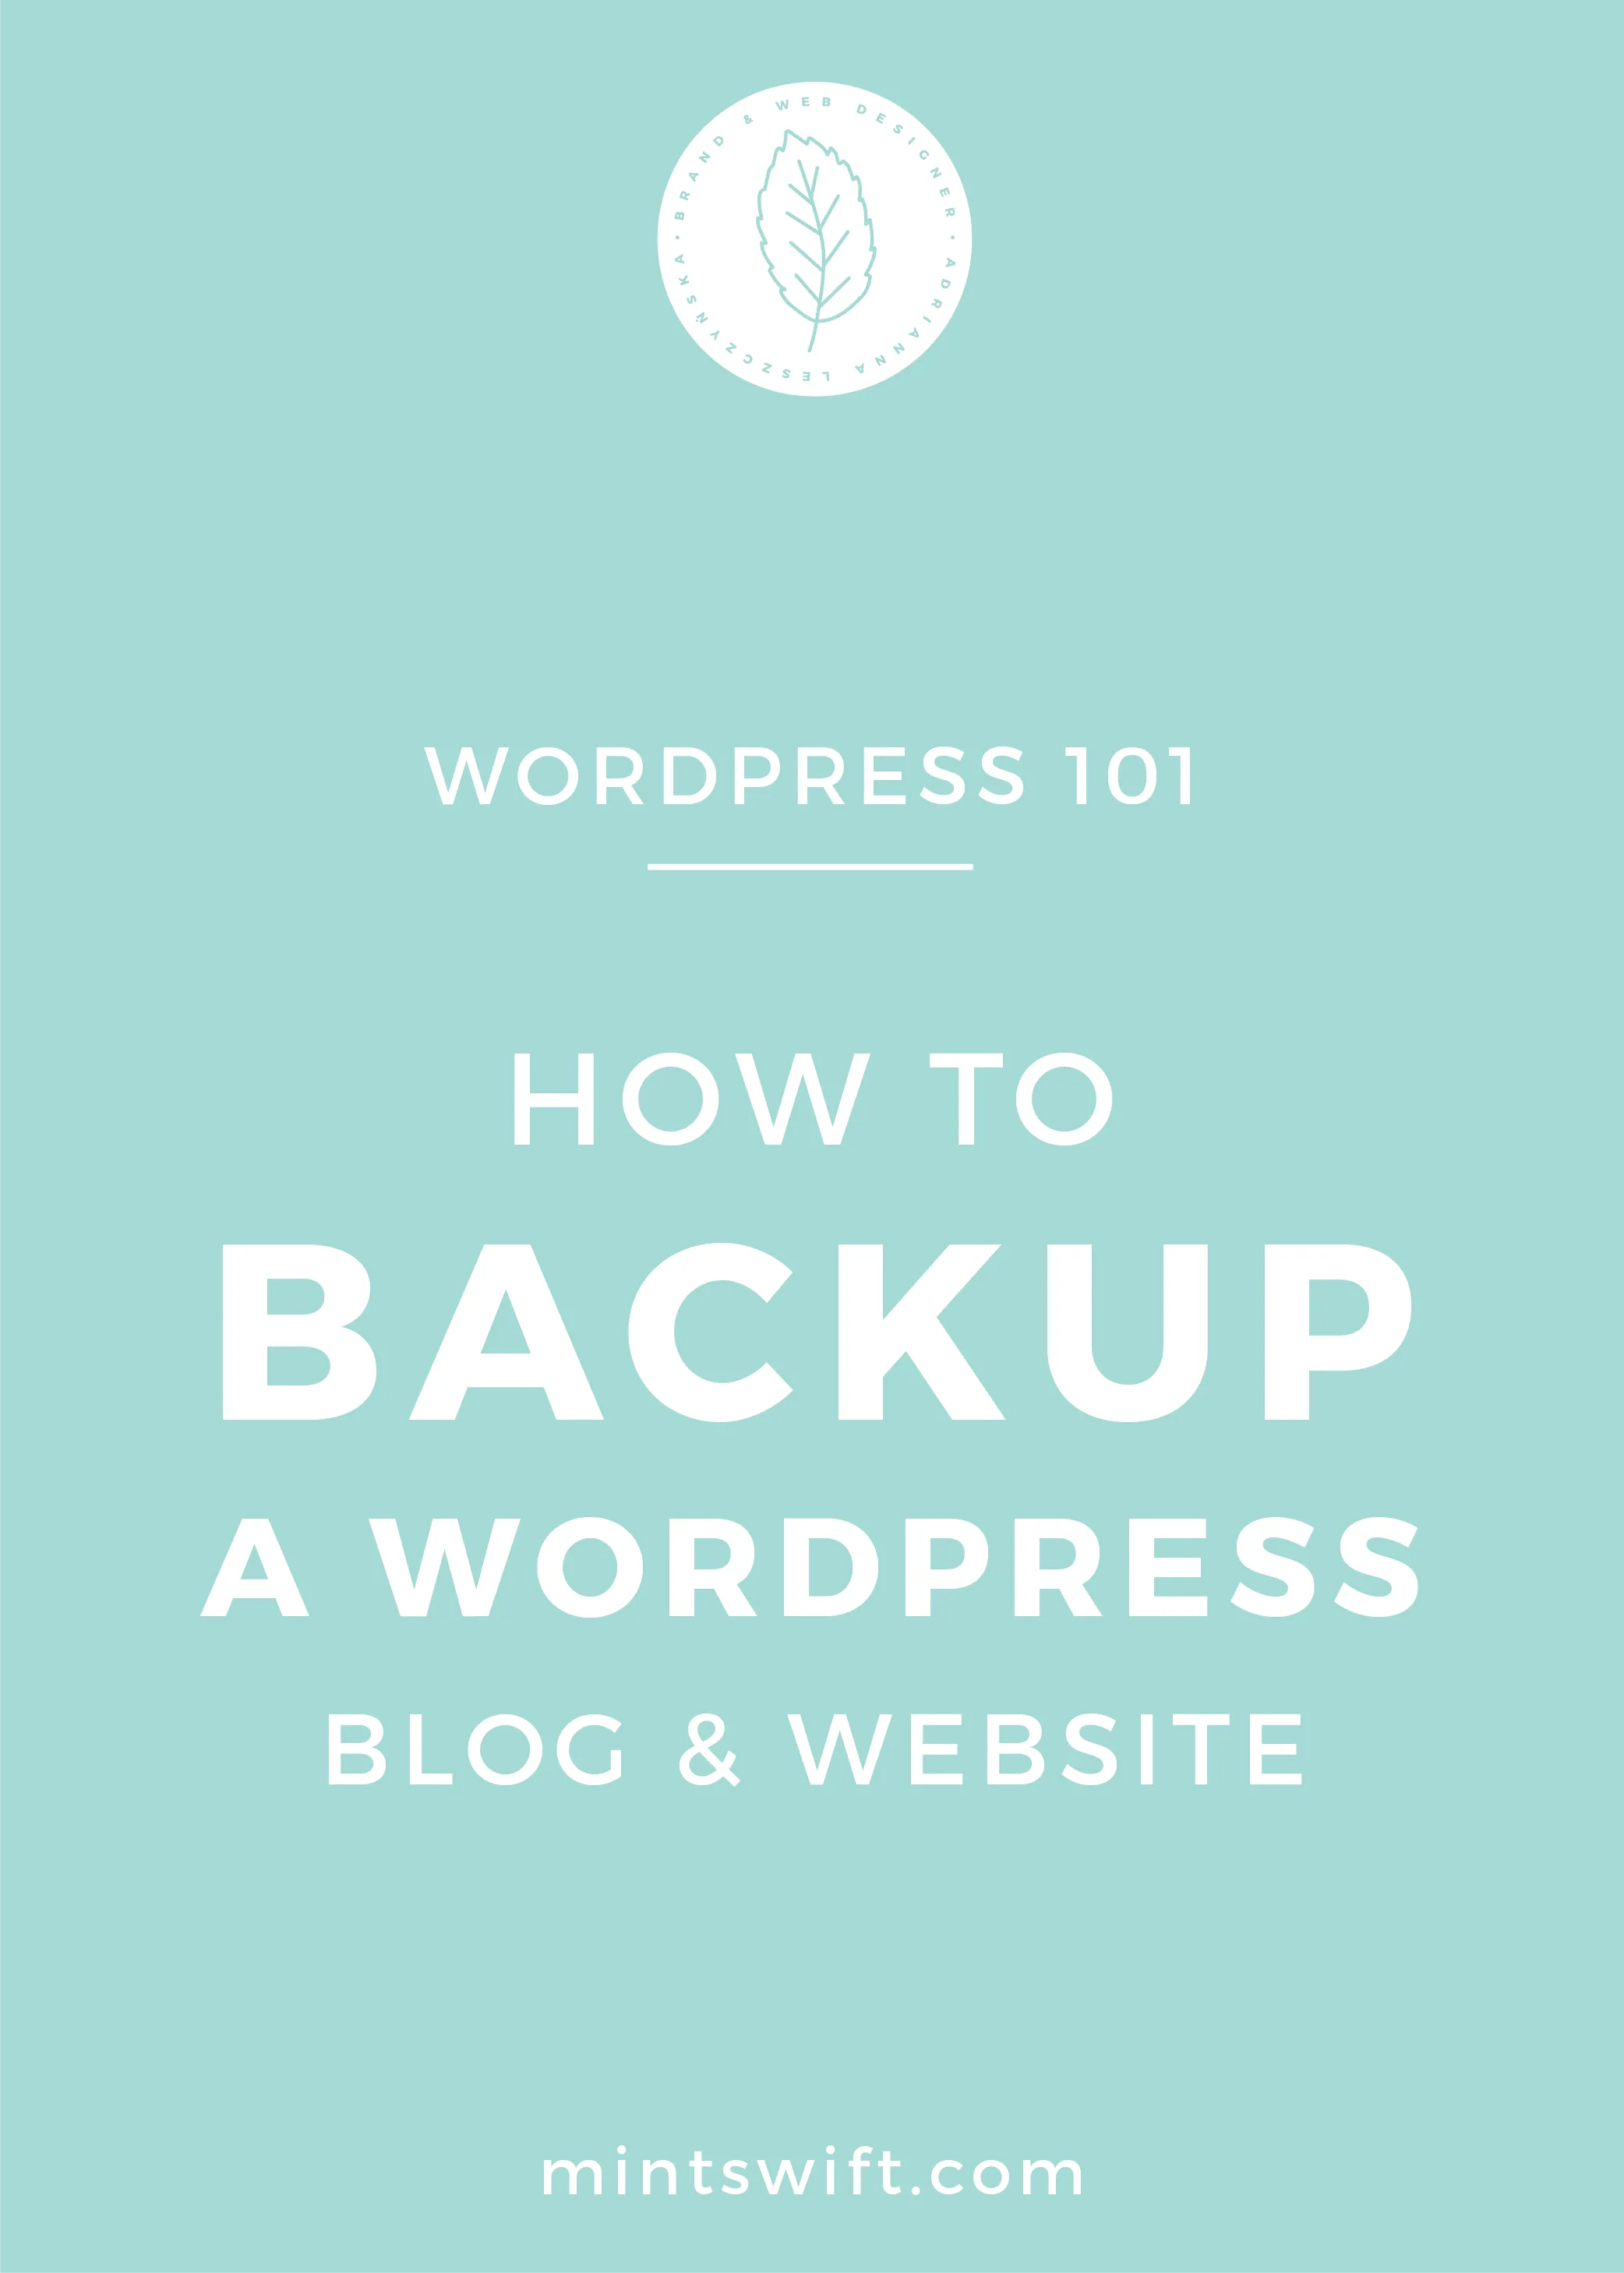 How to Backup a WordPress Blog & Website - MintSwift